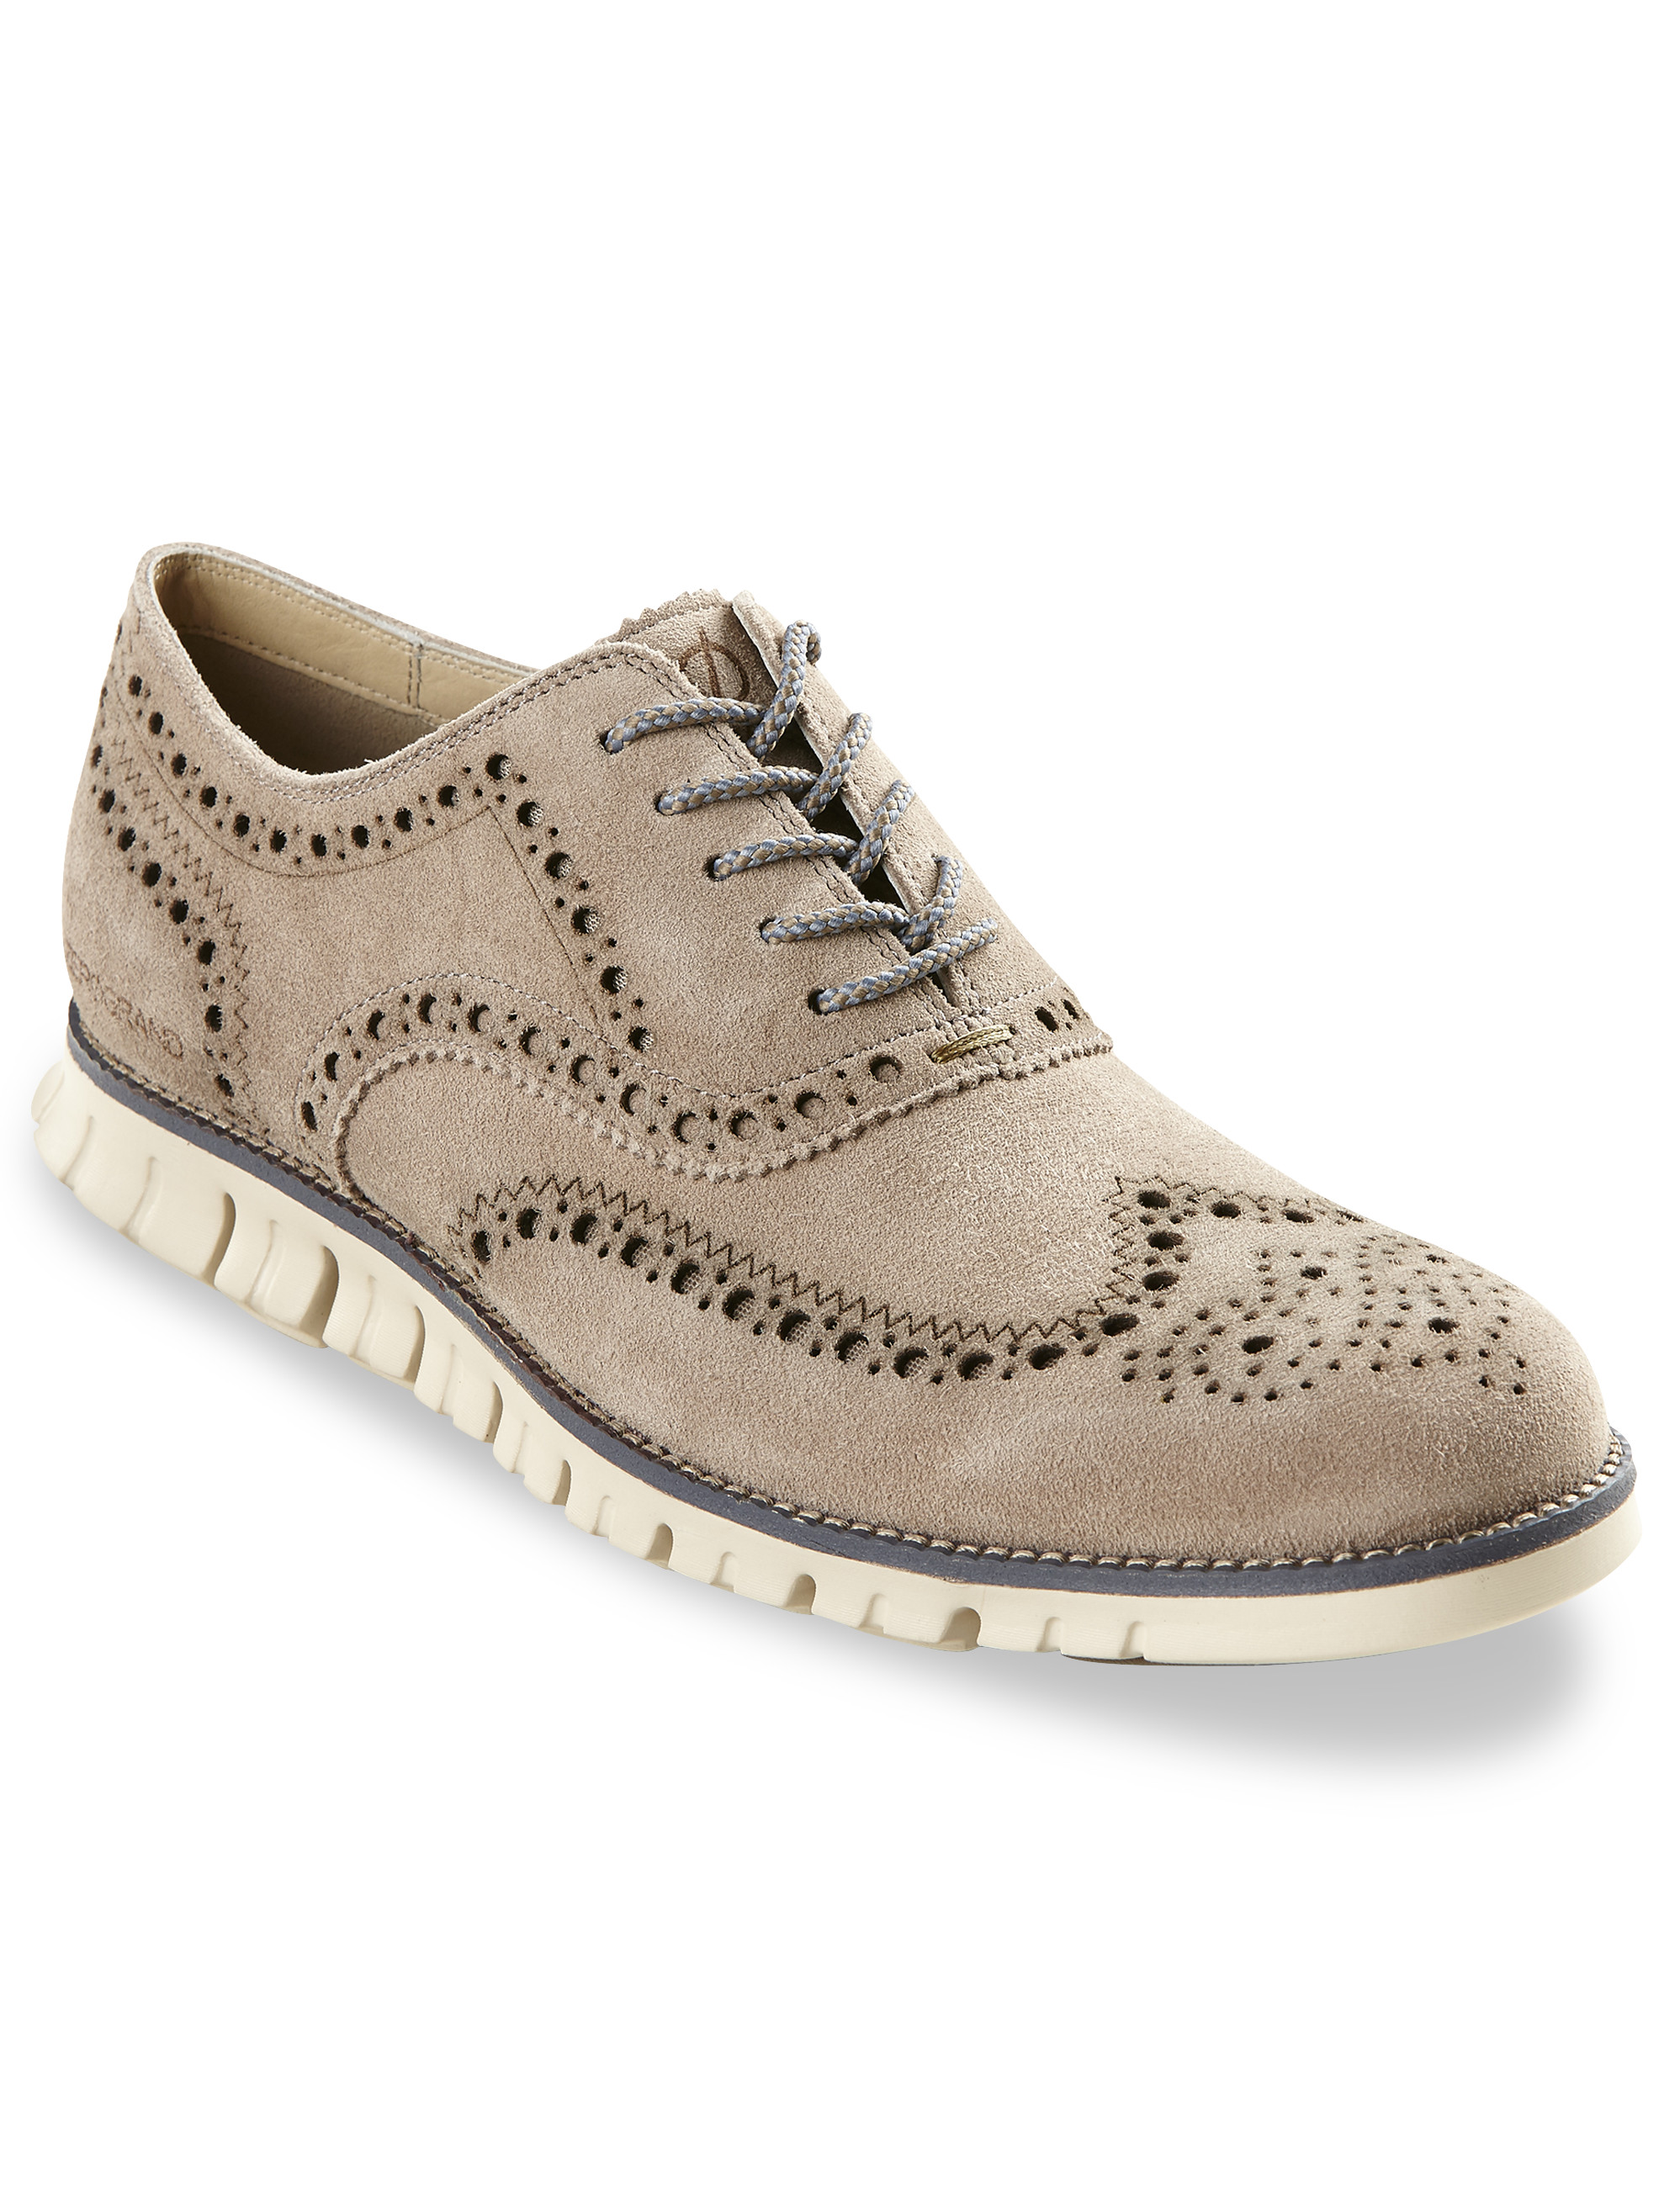 Cole Haan ZeroGrand Wing-Tip Oxfords | Tuggl